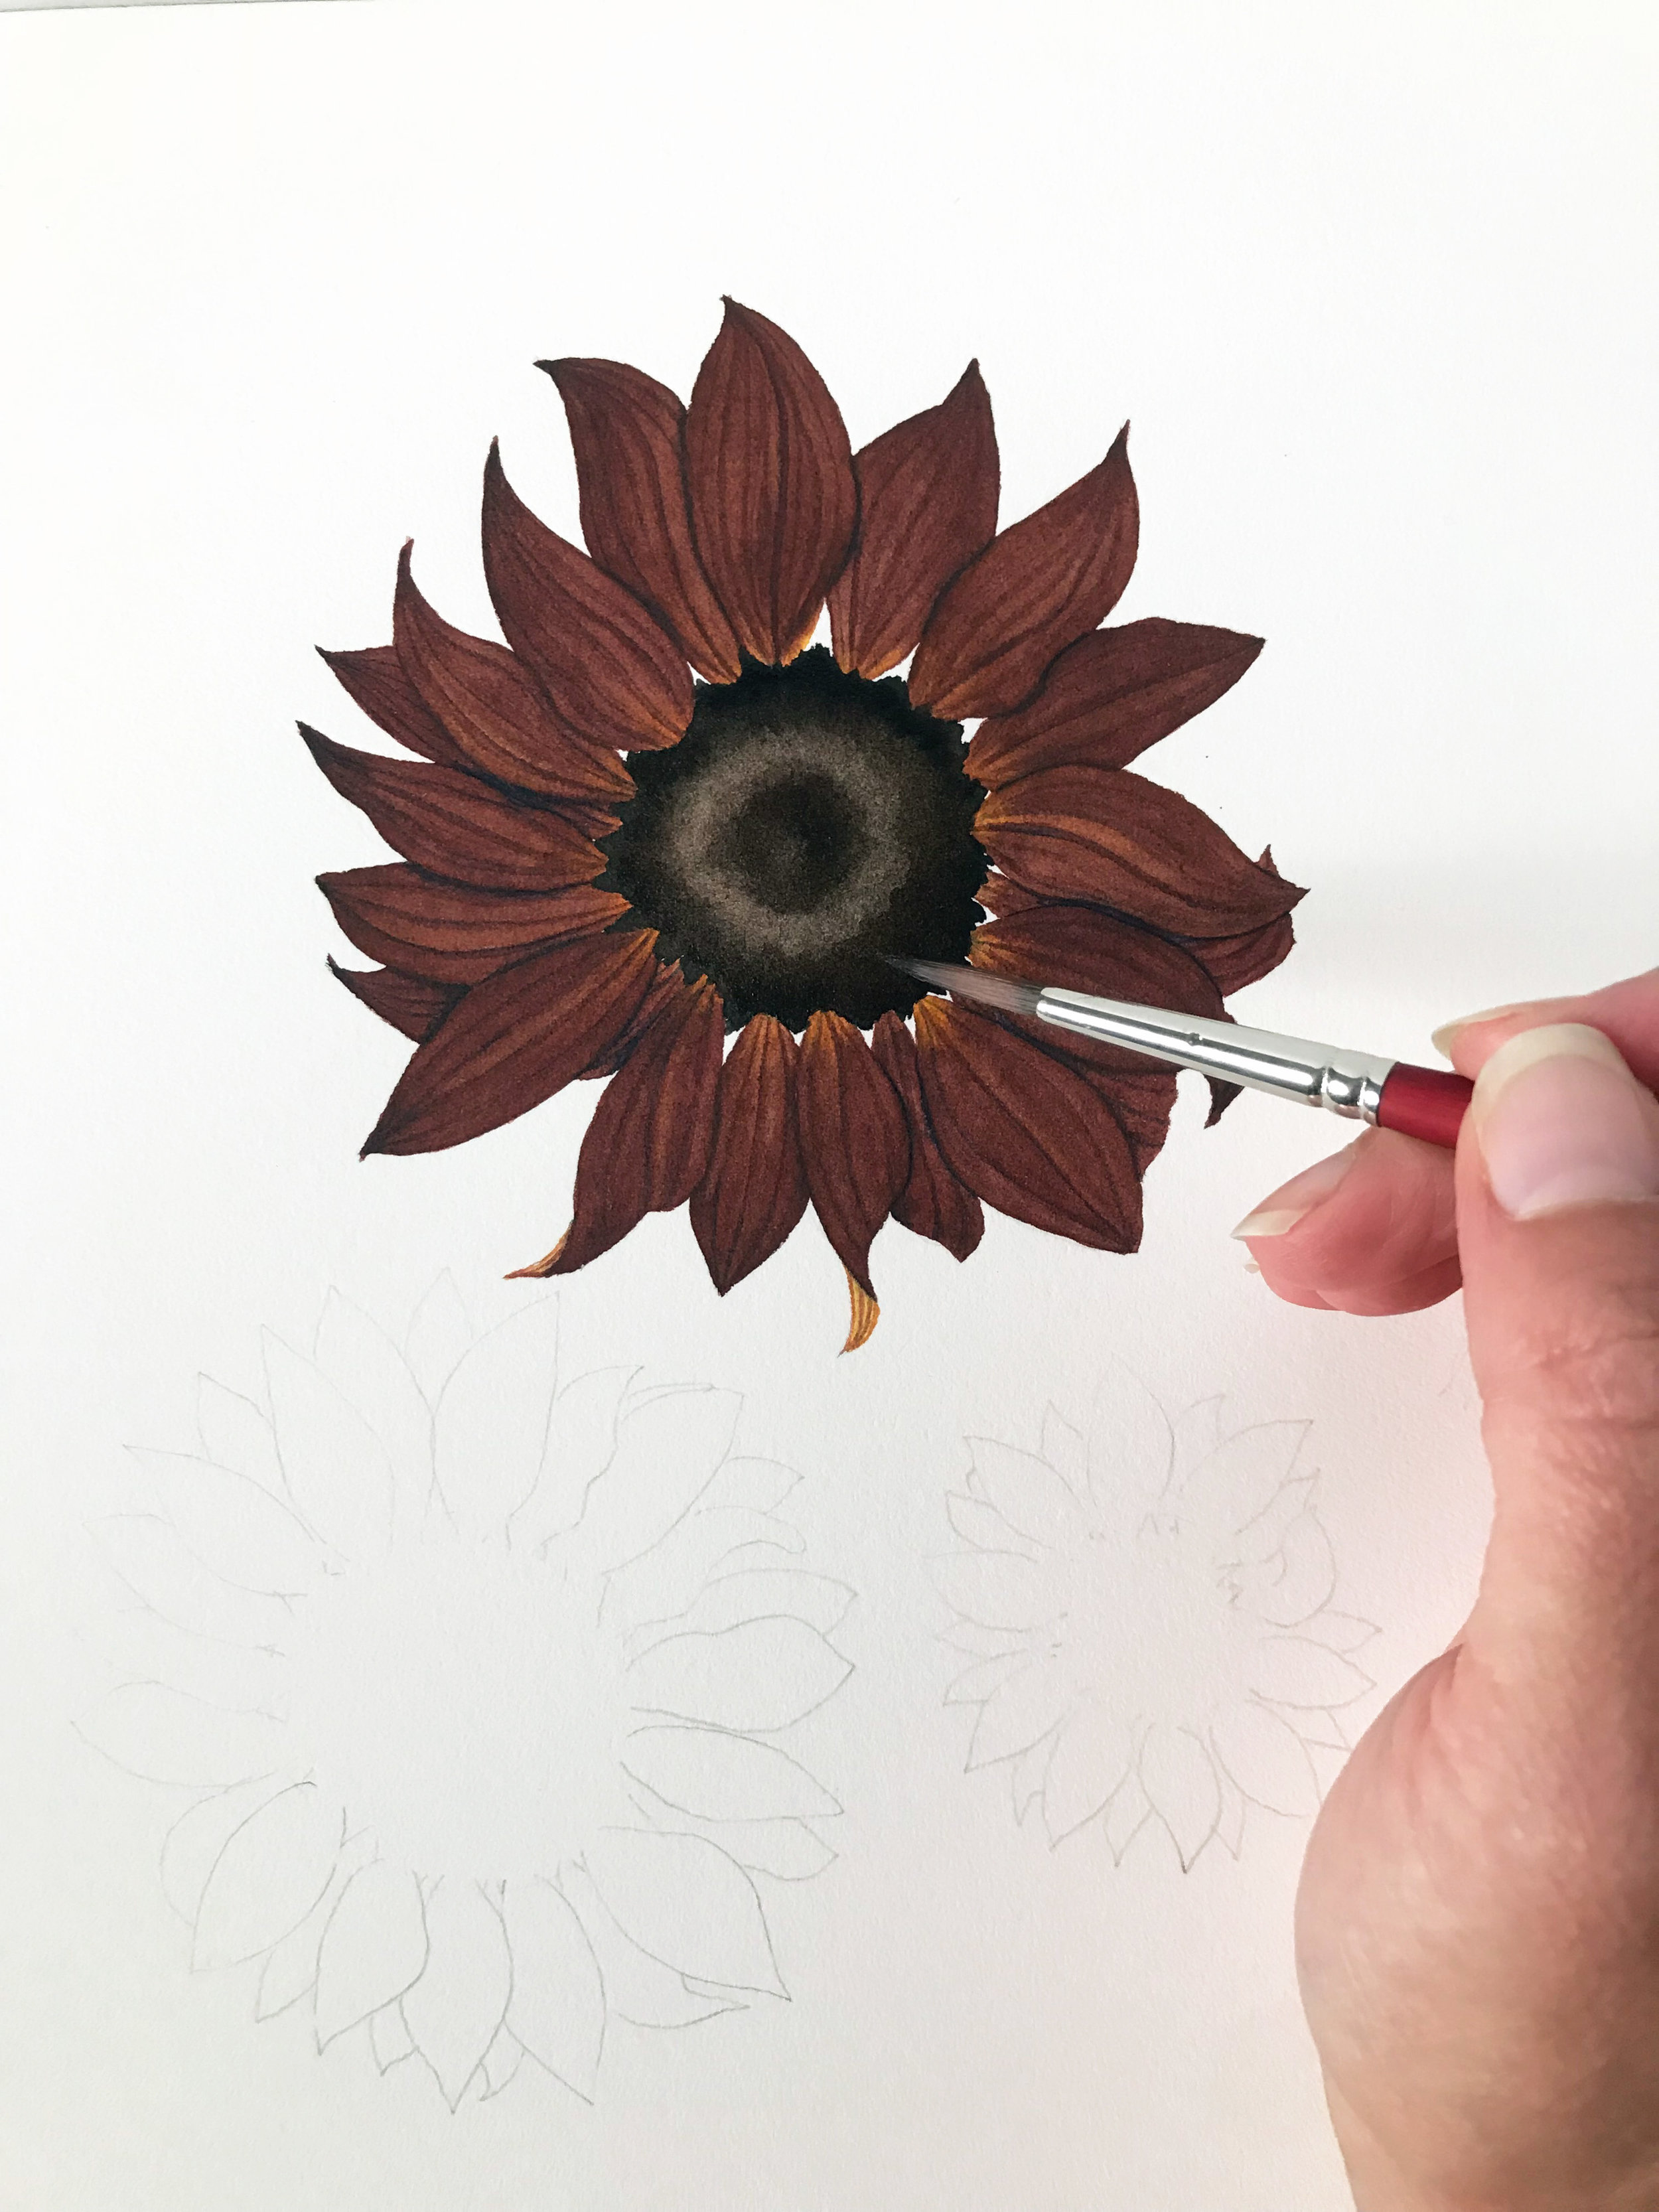 The Process of Painting a Sunflower with Watercolor Involves Many Layers